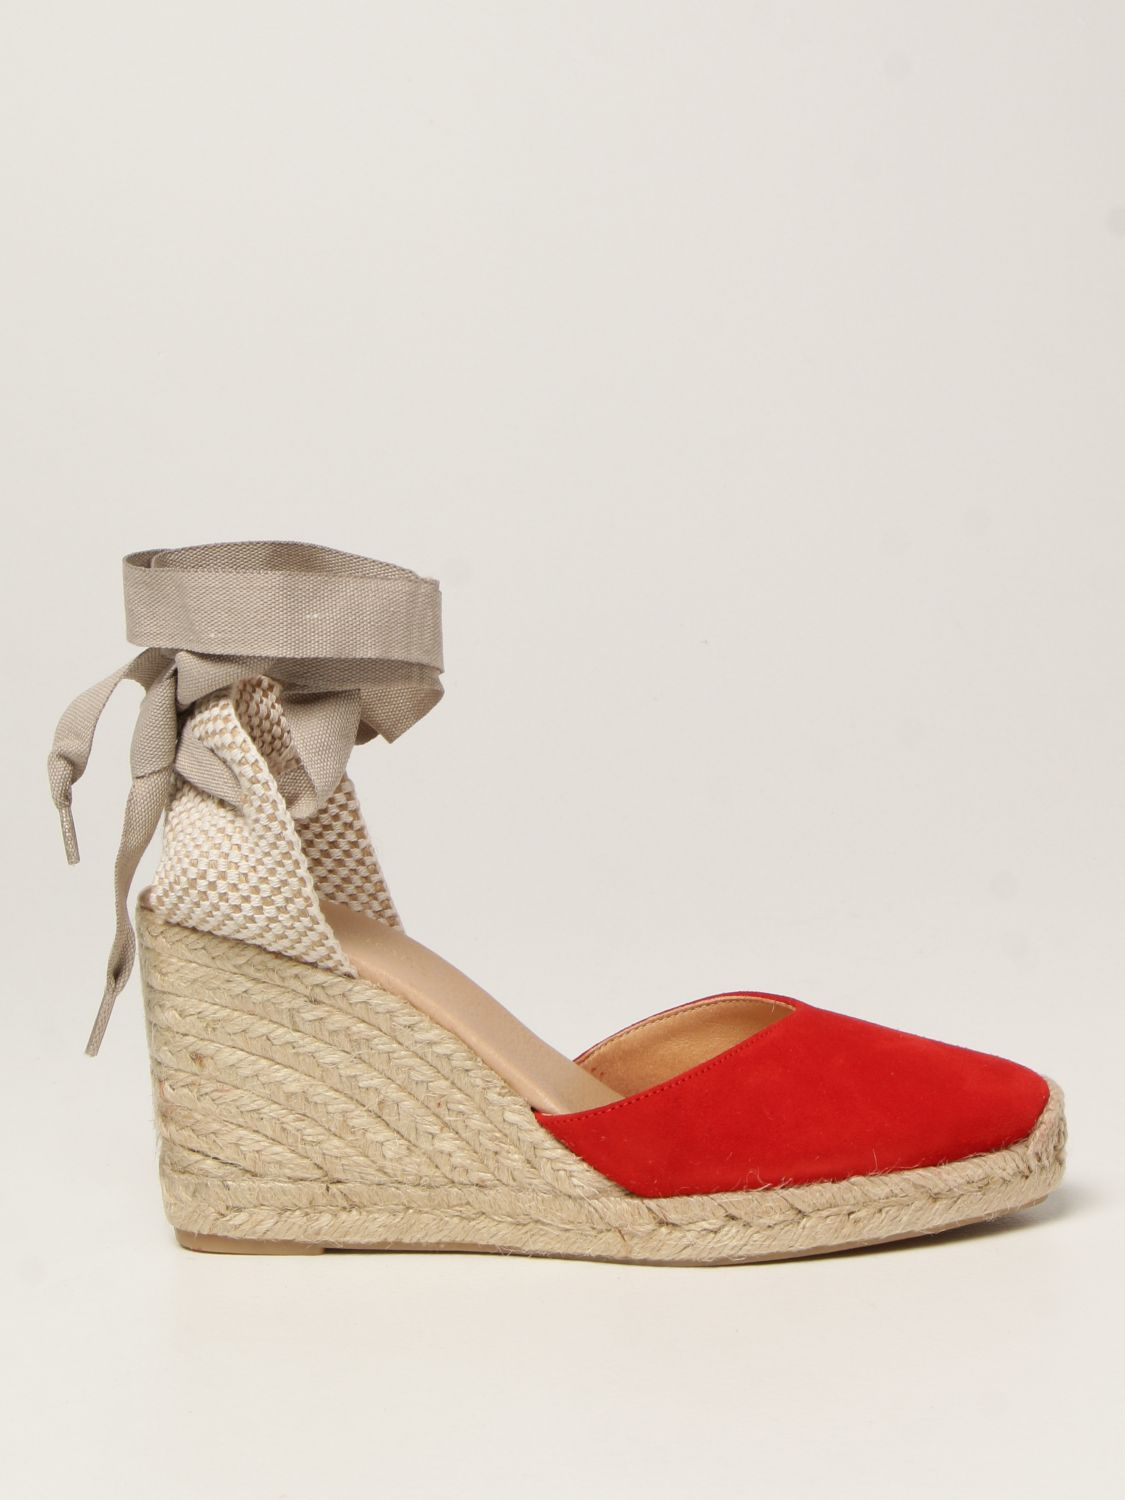 Chaussures compensées My Chalom: Chaussures femme My Chalom rouge 1